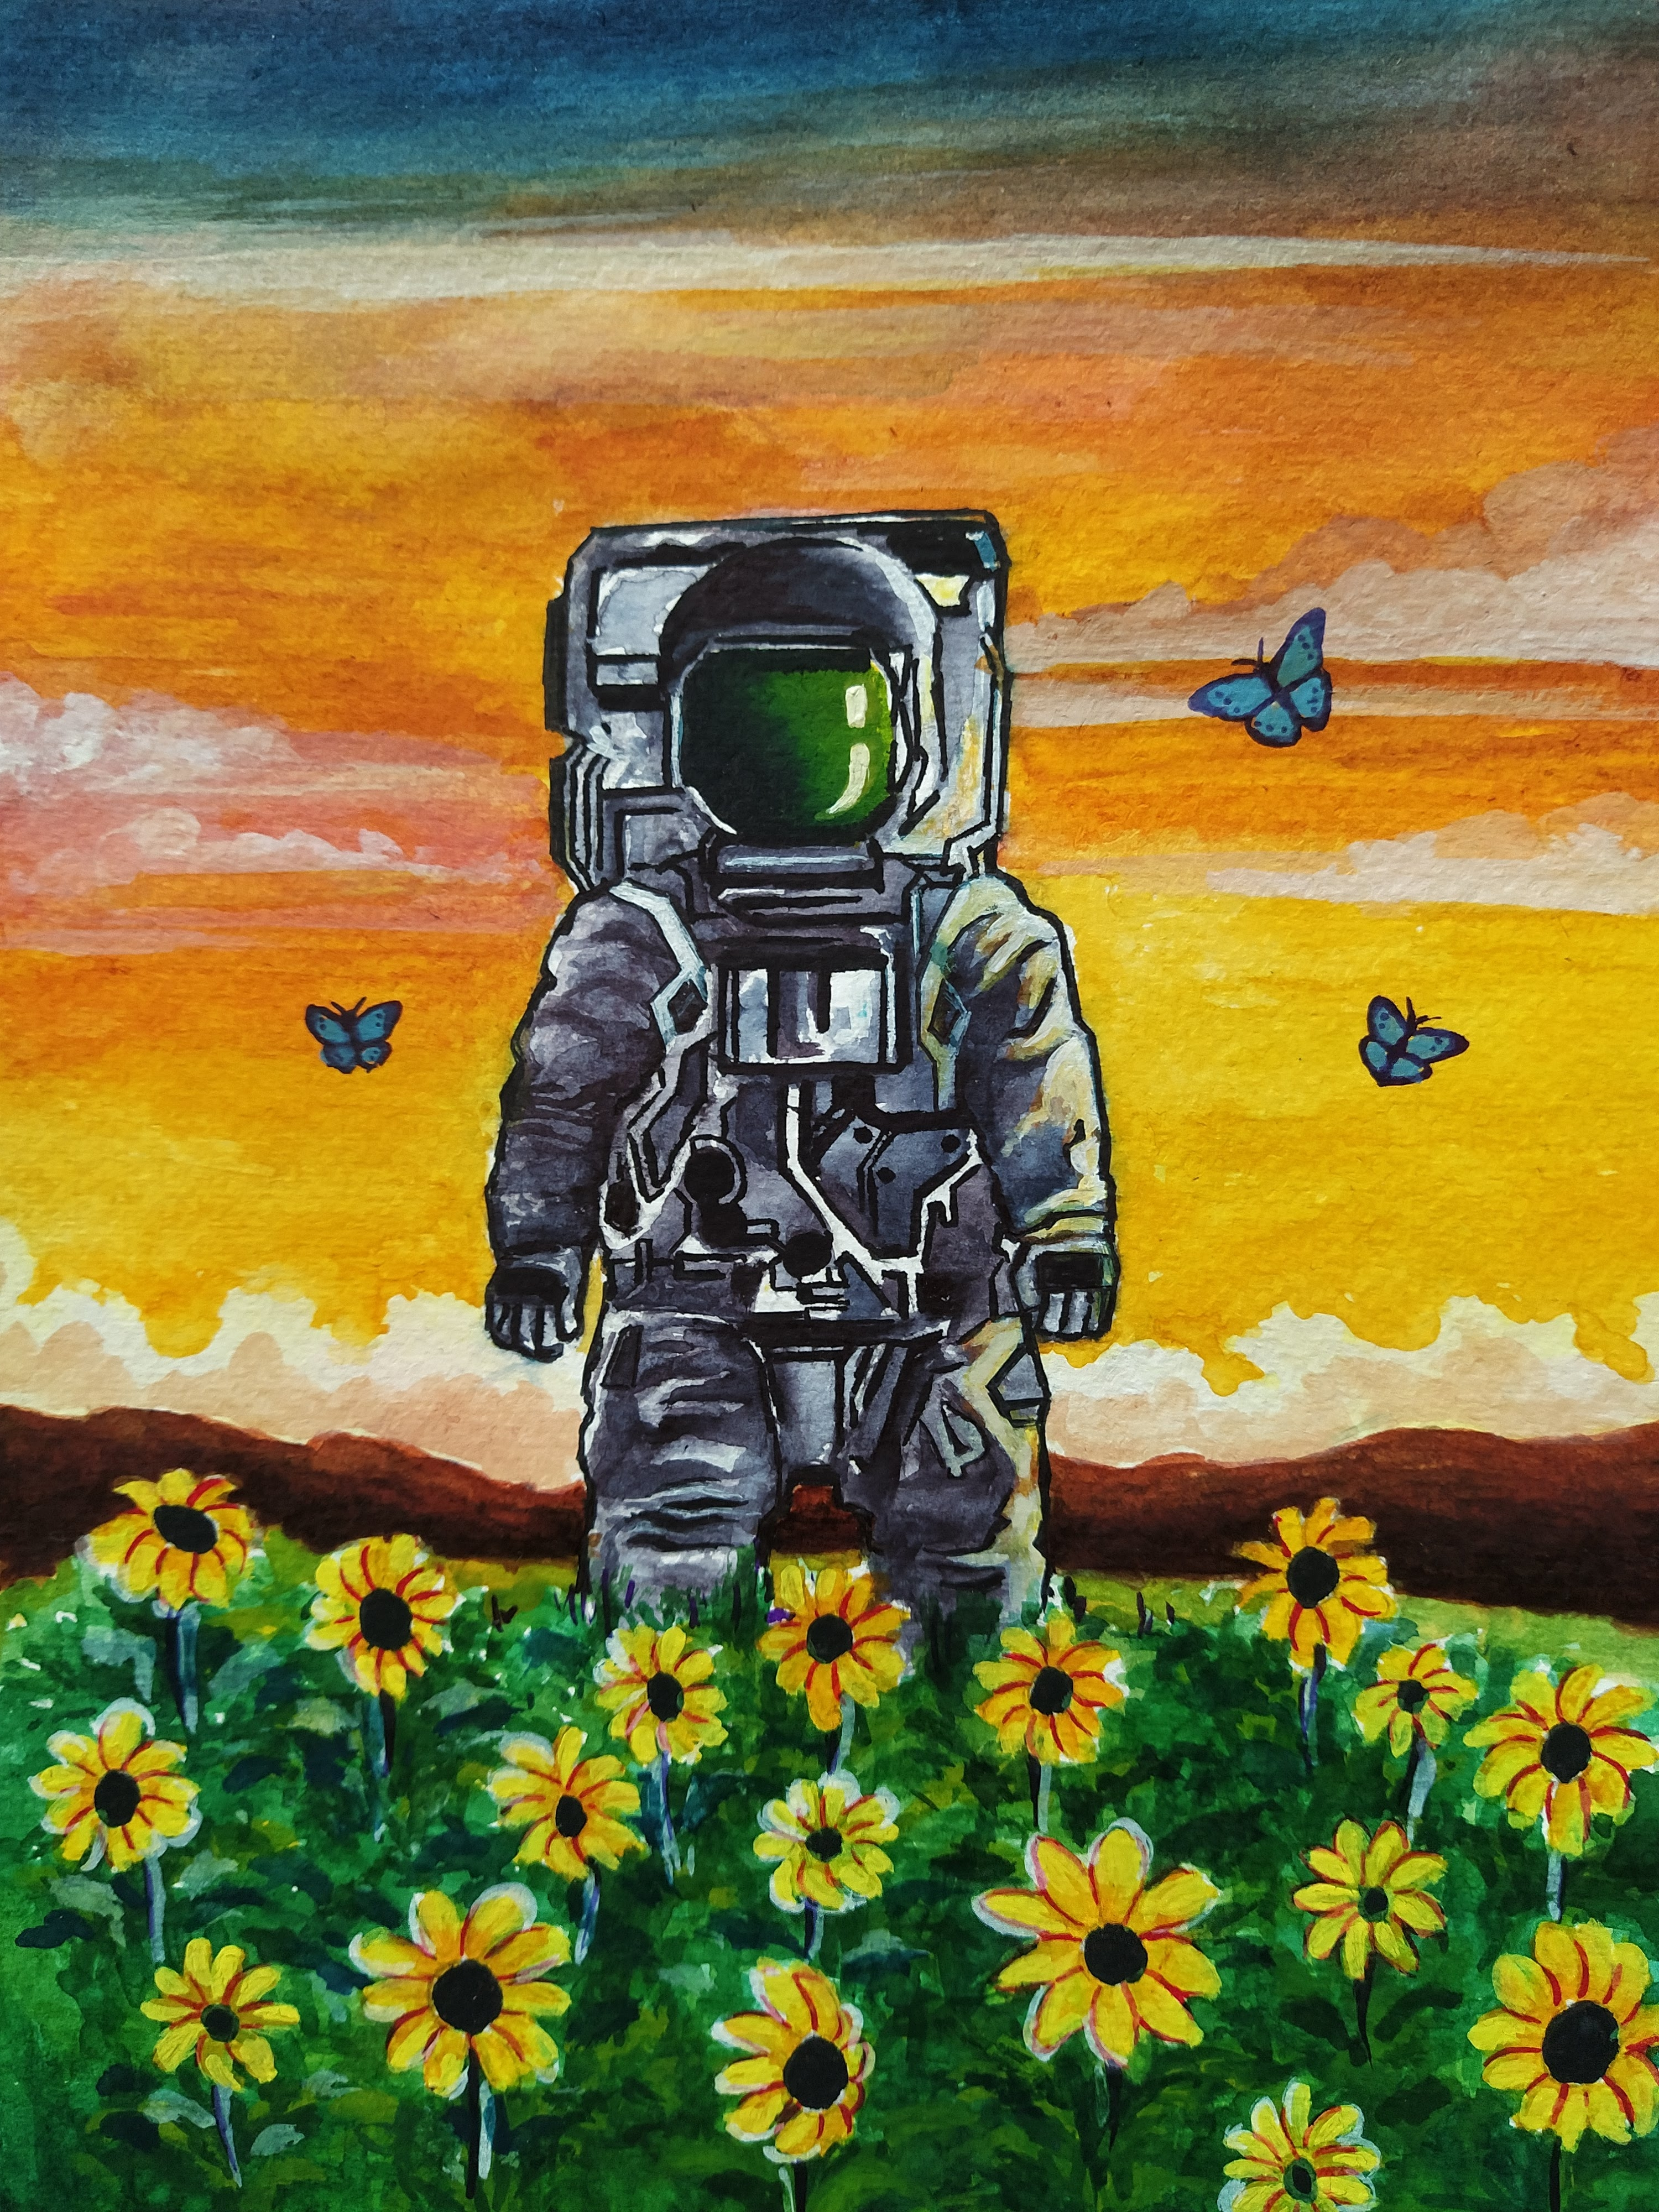 The Other Astronaut 16239